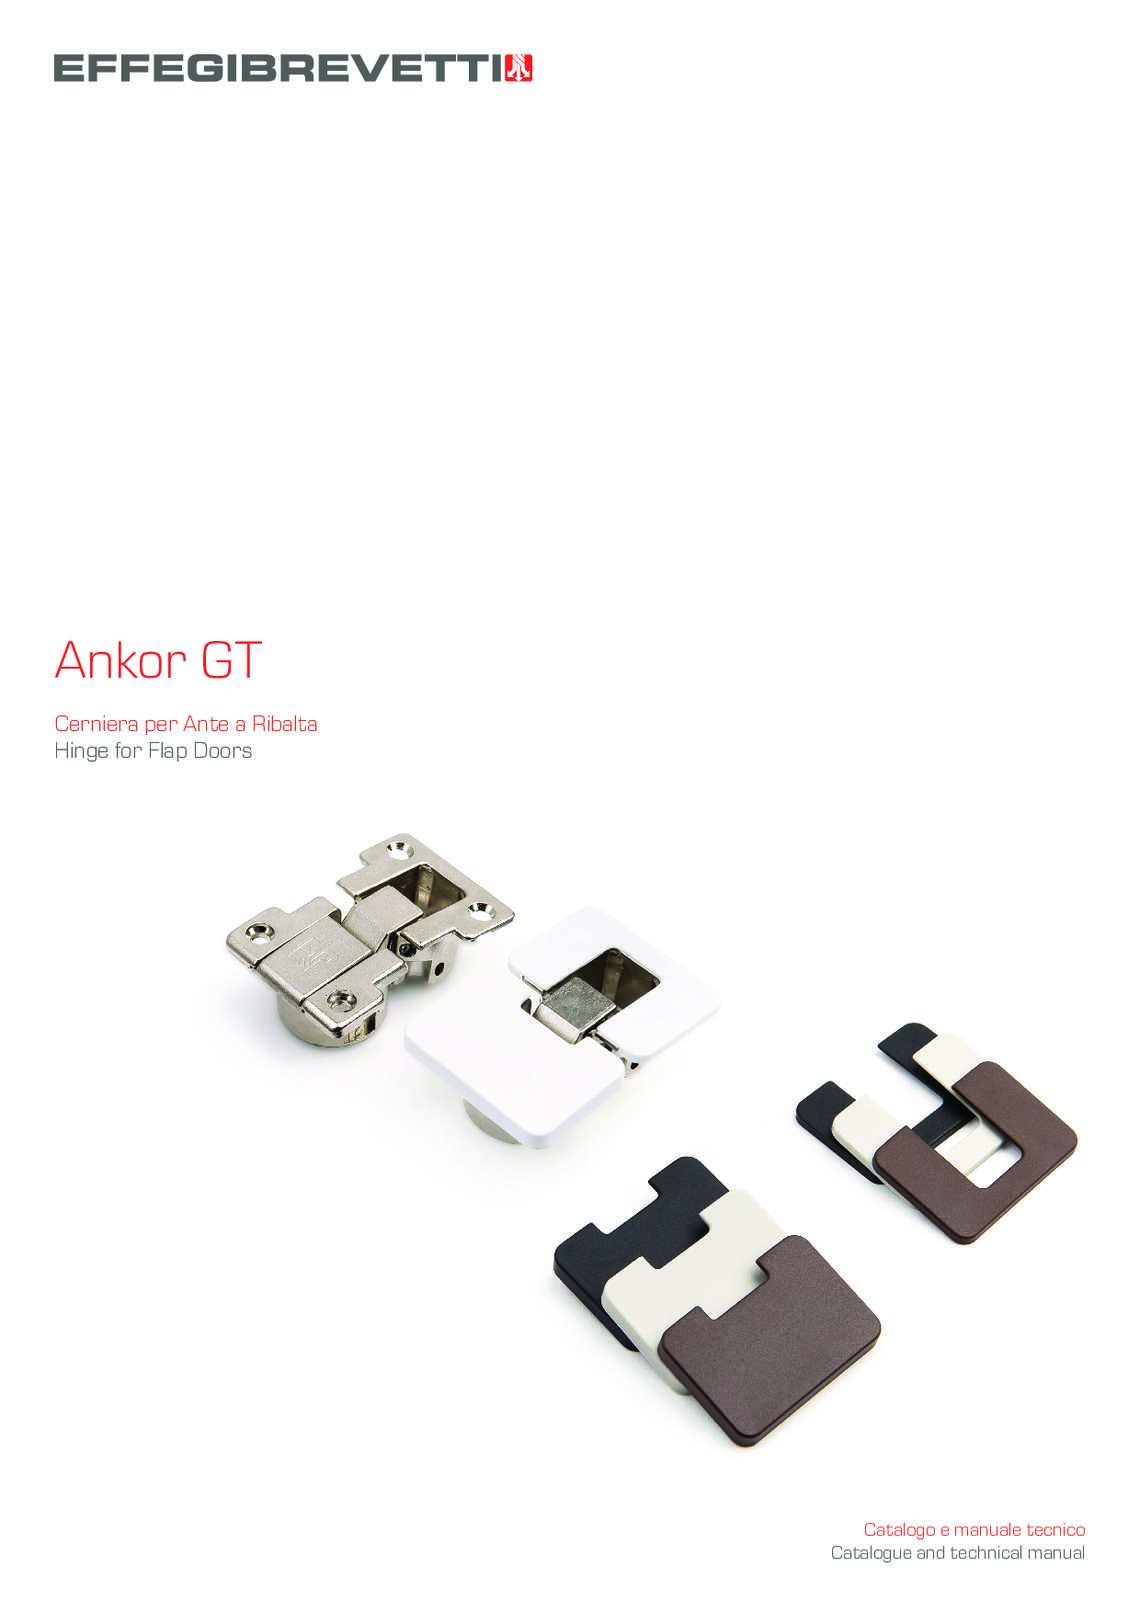 Ankor GT - Hinge for Flap Doors